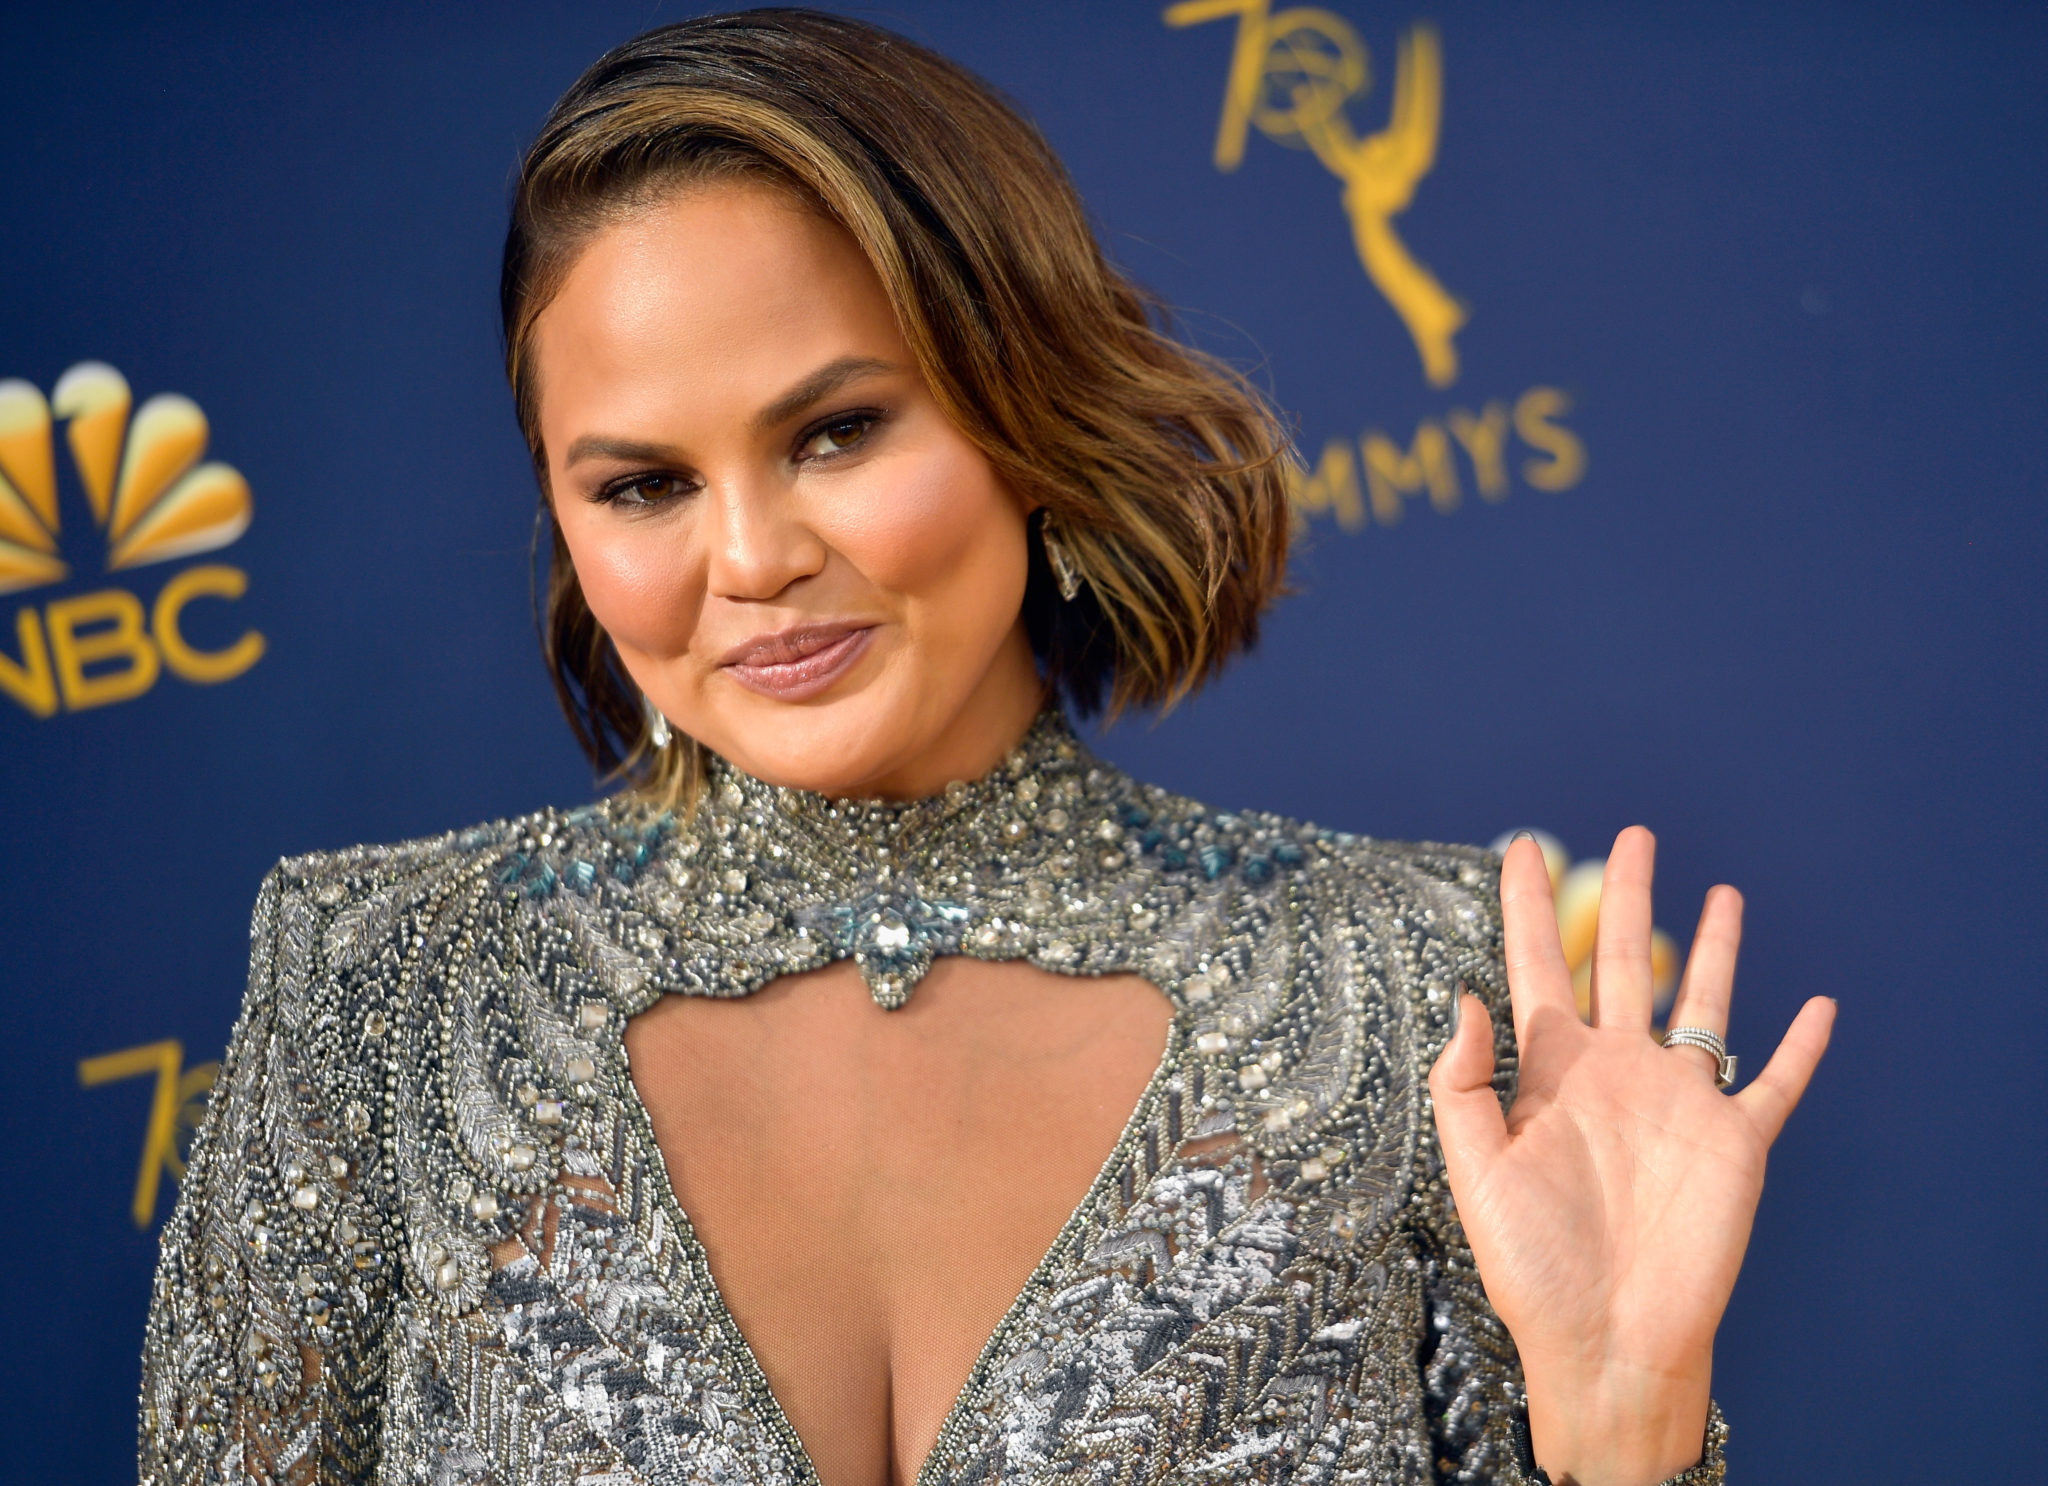 Chrissy Teigen Opens Up About Struggling With Alcohol: I Have to Fix Myself